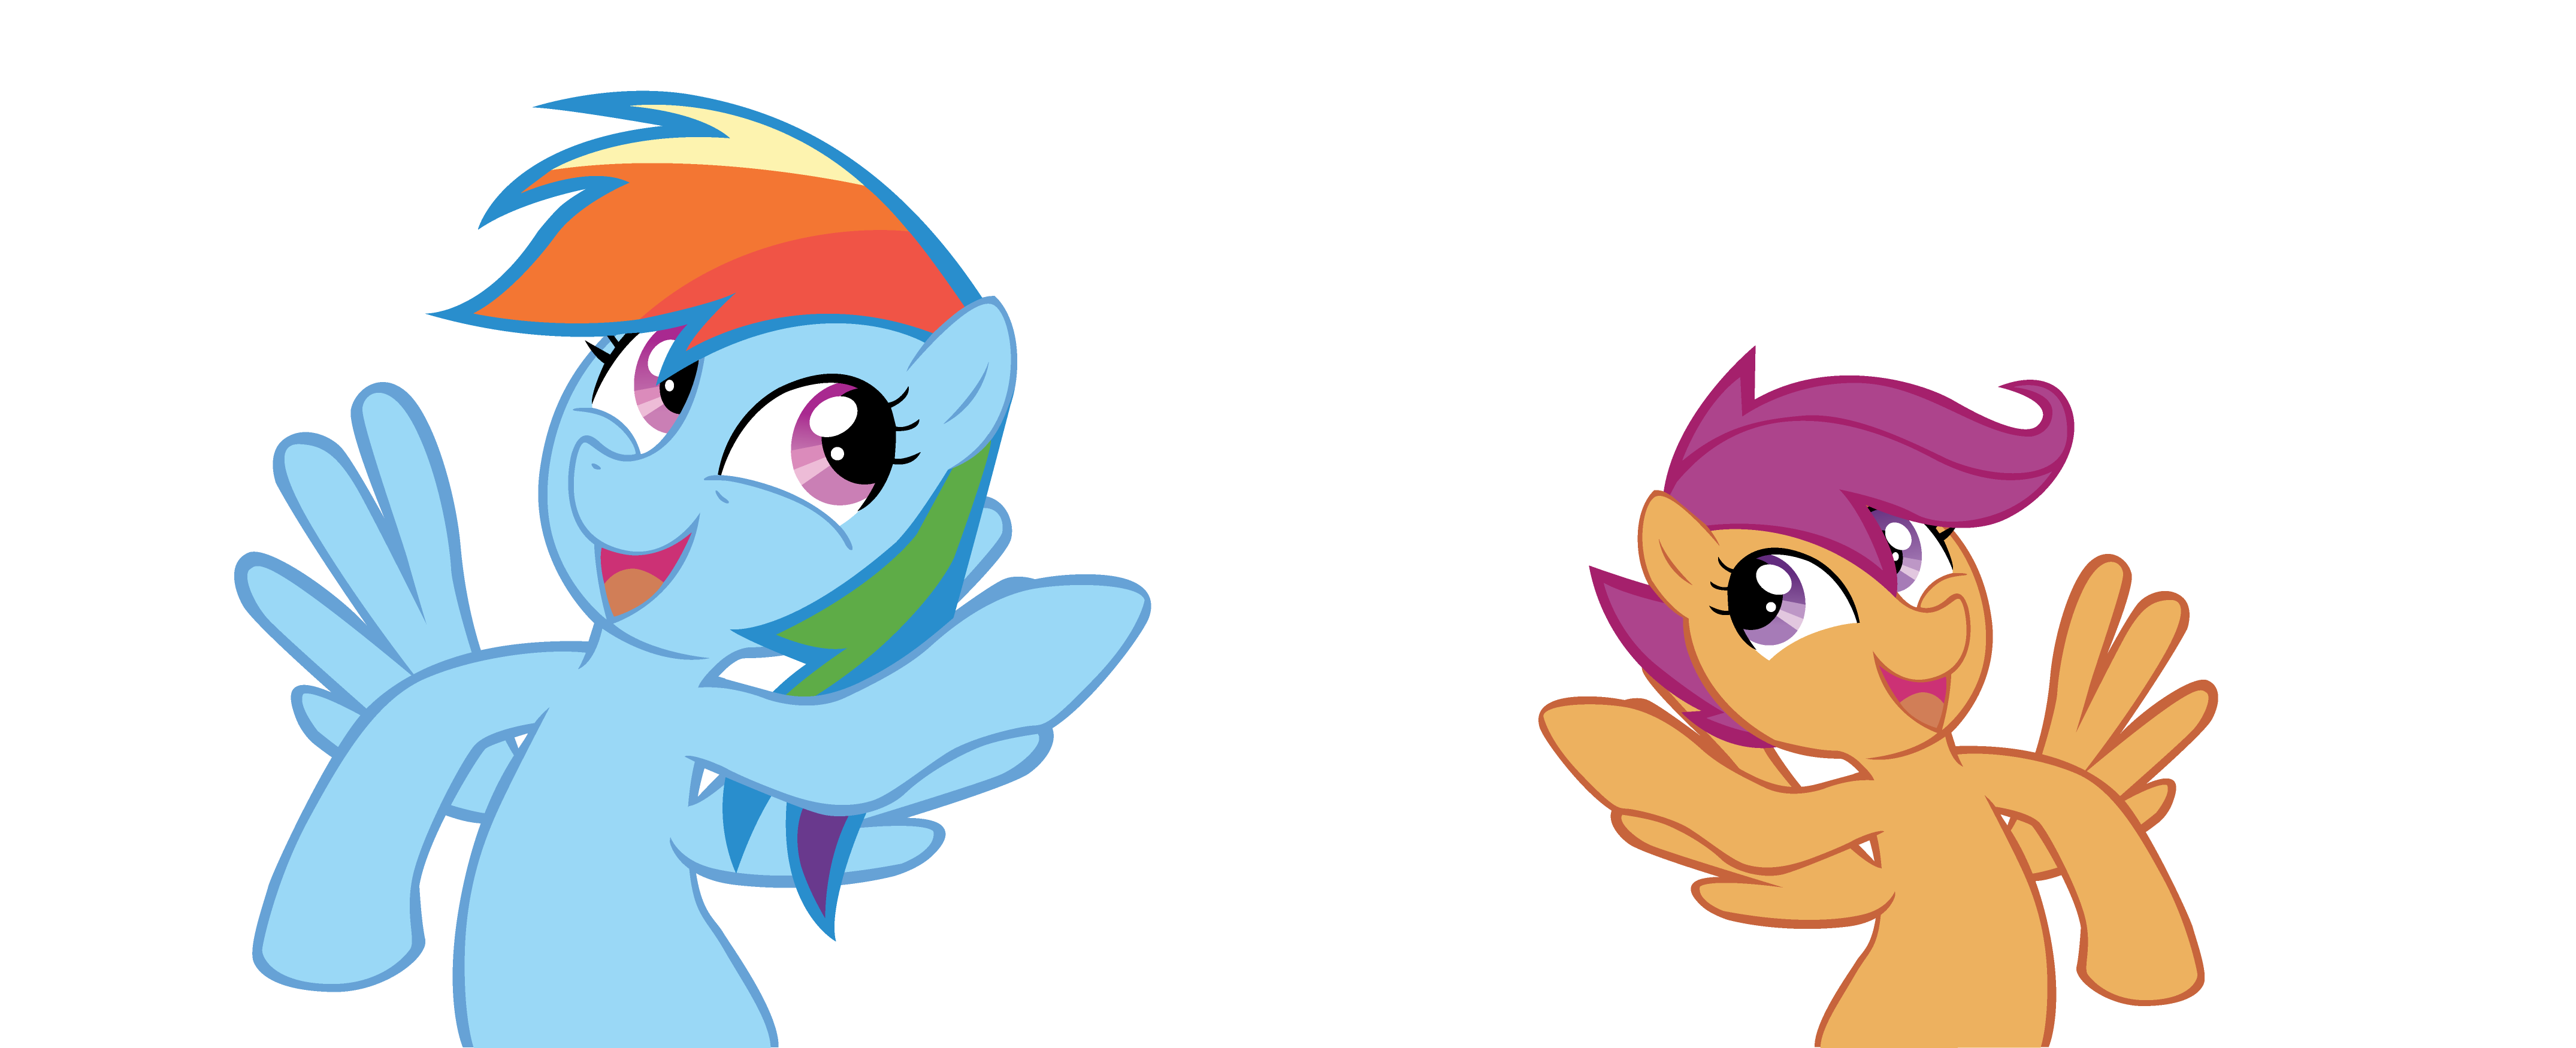 Rainbow Dash With Scootaloo By Ocarina0ftimelord On Deviantart 1024 x 1348 png 407 кб. deviantart